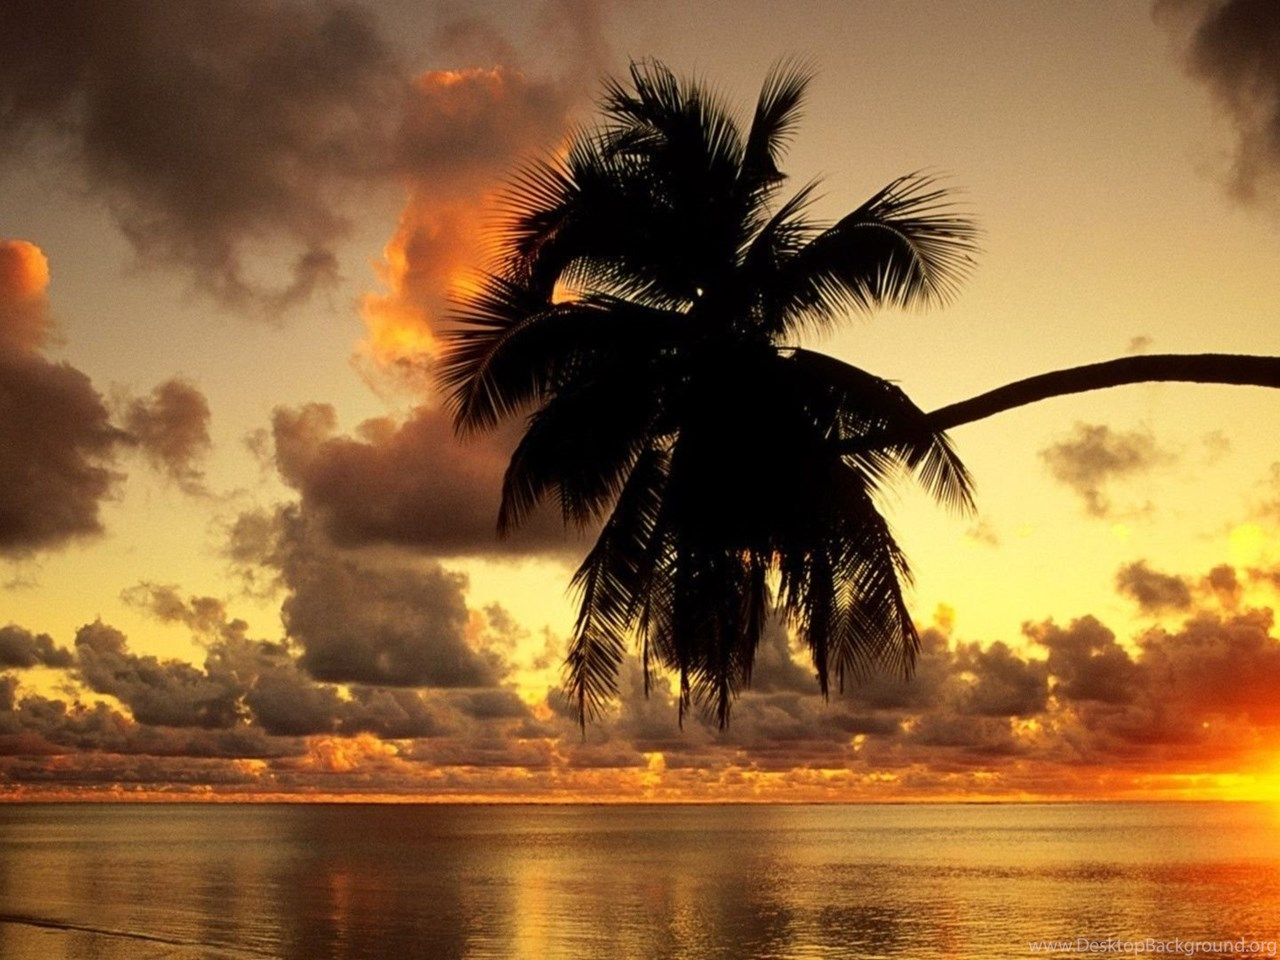 Hd Tropical Island Beach Paradise Wallpapers And Backgrounds: Tropical Island Sunset Wallpapers Wallpapers Cave Desktop